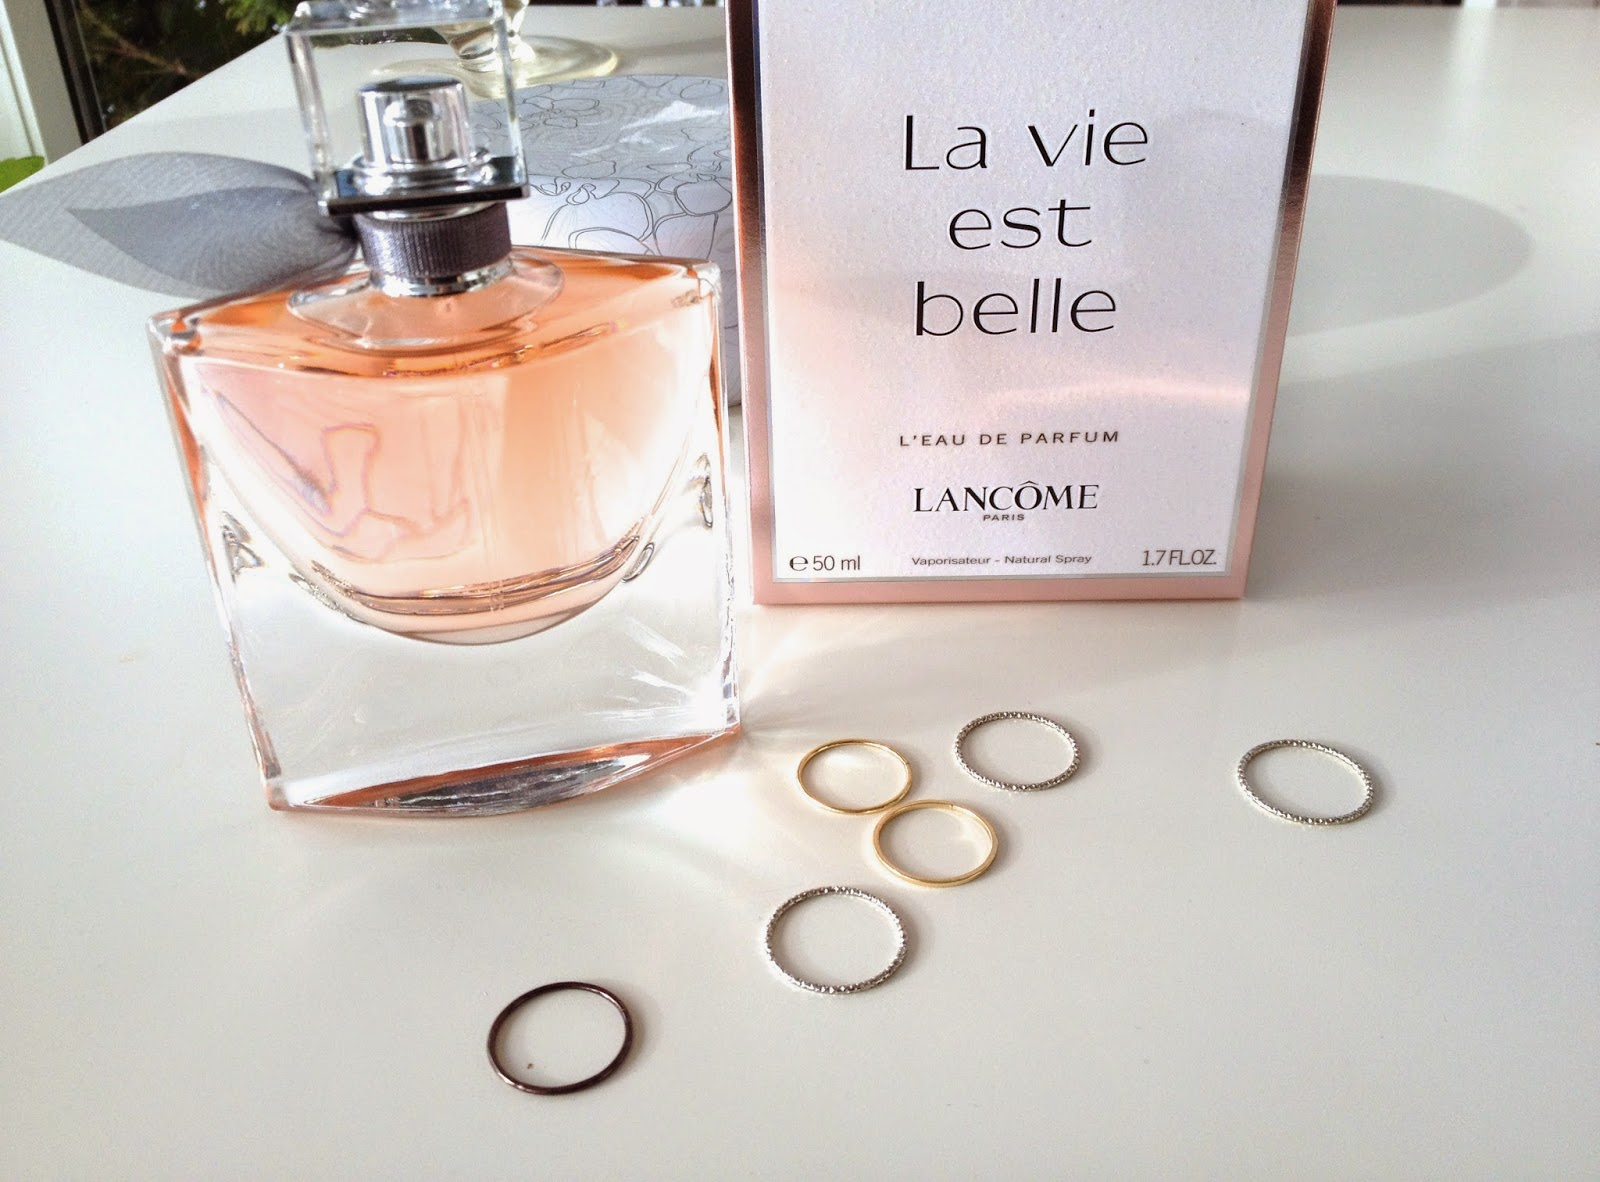 Perfume La Est And Beauty Belle ReviewChristine's Lancôme Vie IEH29YWD